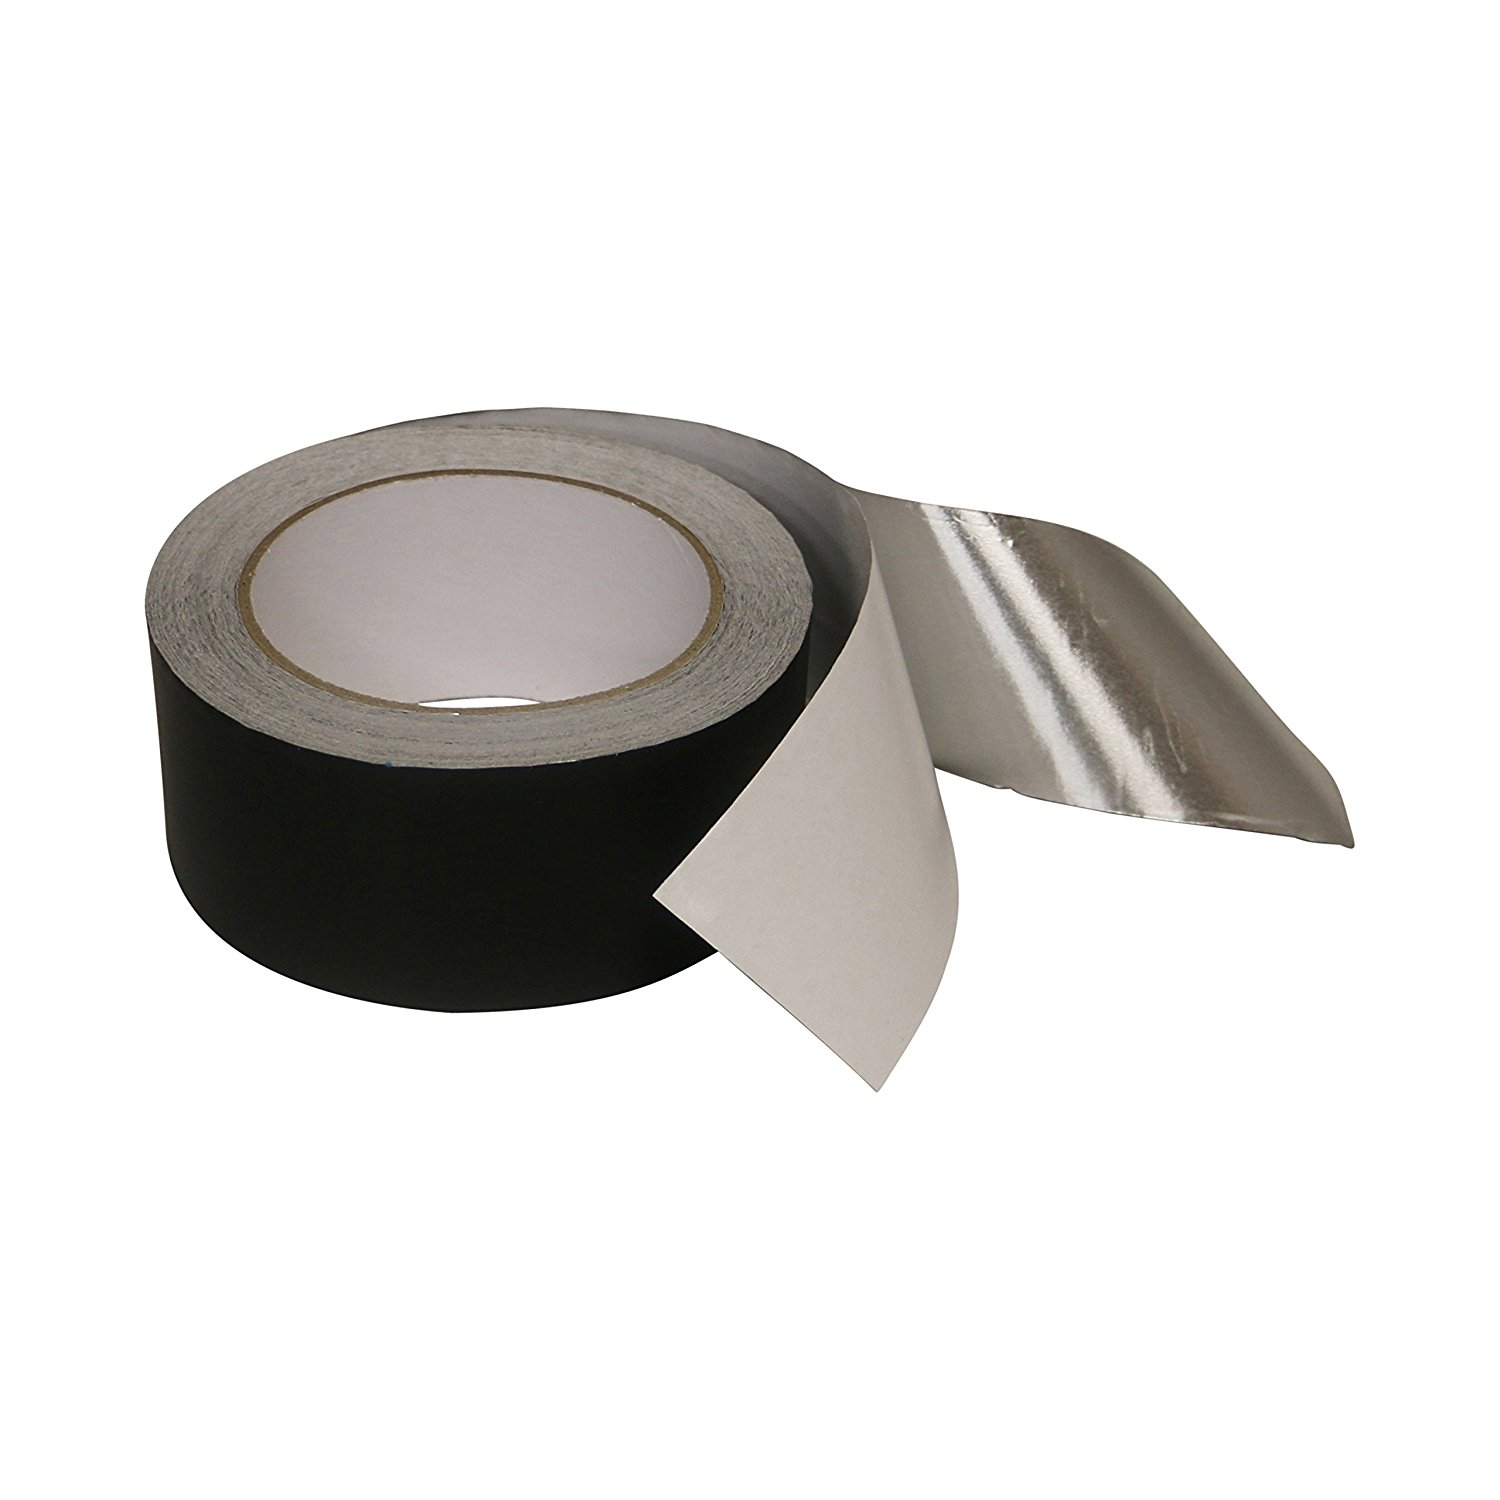 Matte Black Aluminum Foil Tape with Acrylic adhesive for Heat and Light Absorption Featured Image